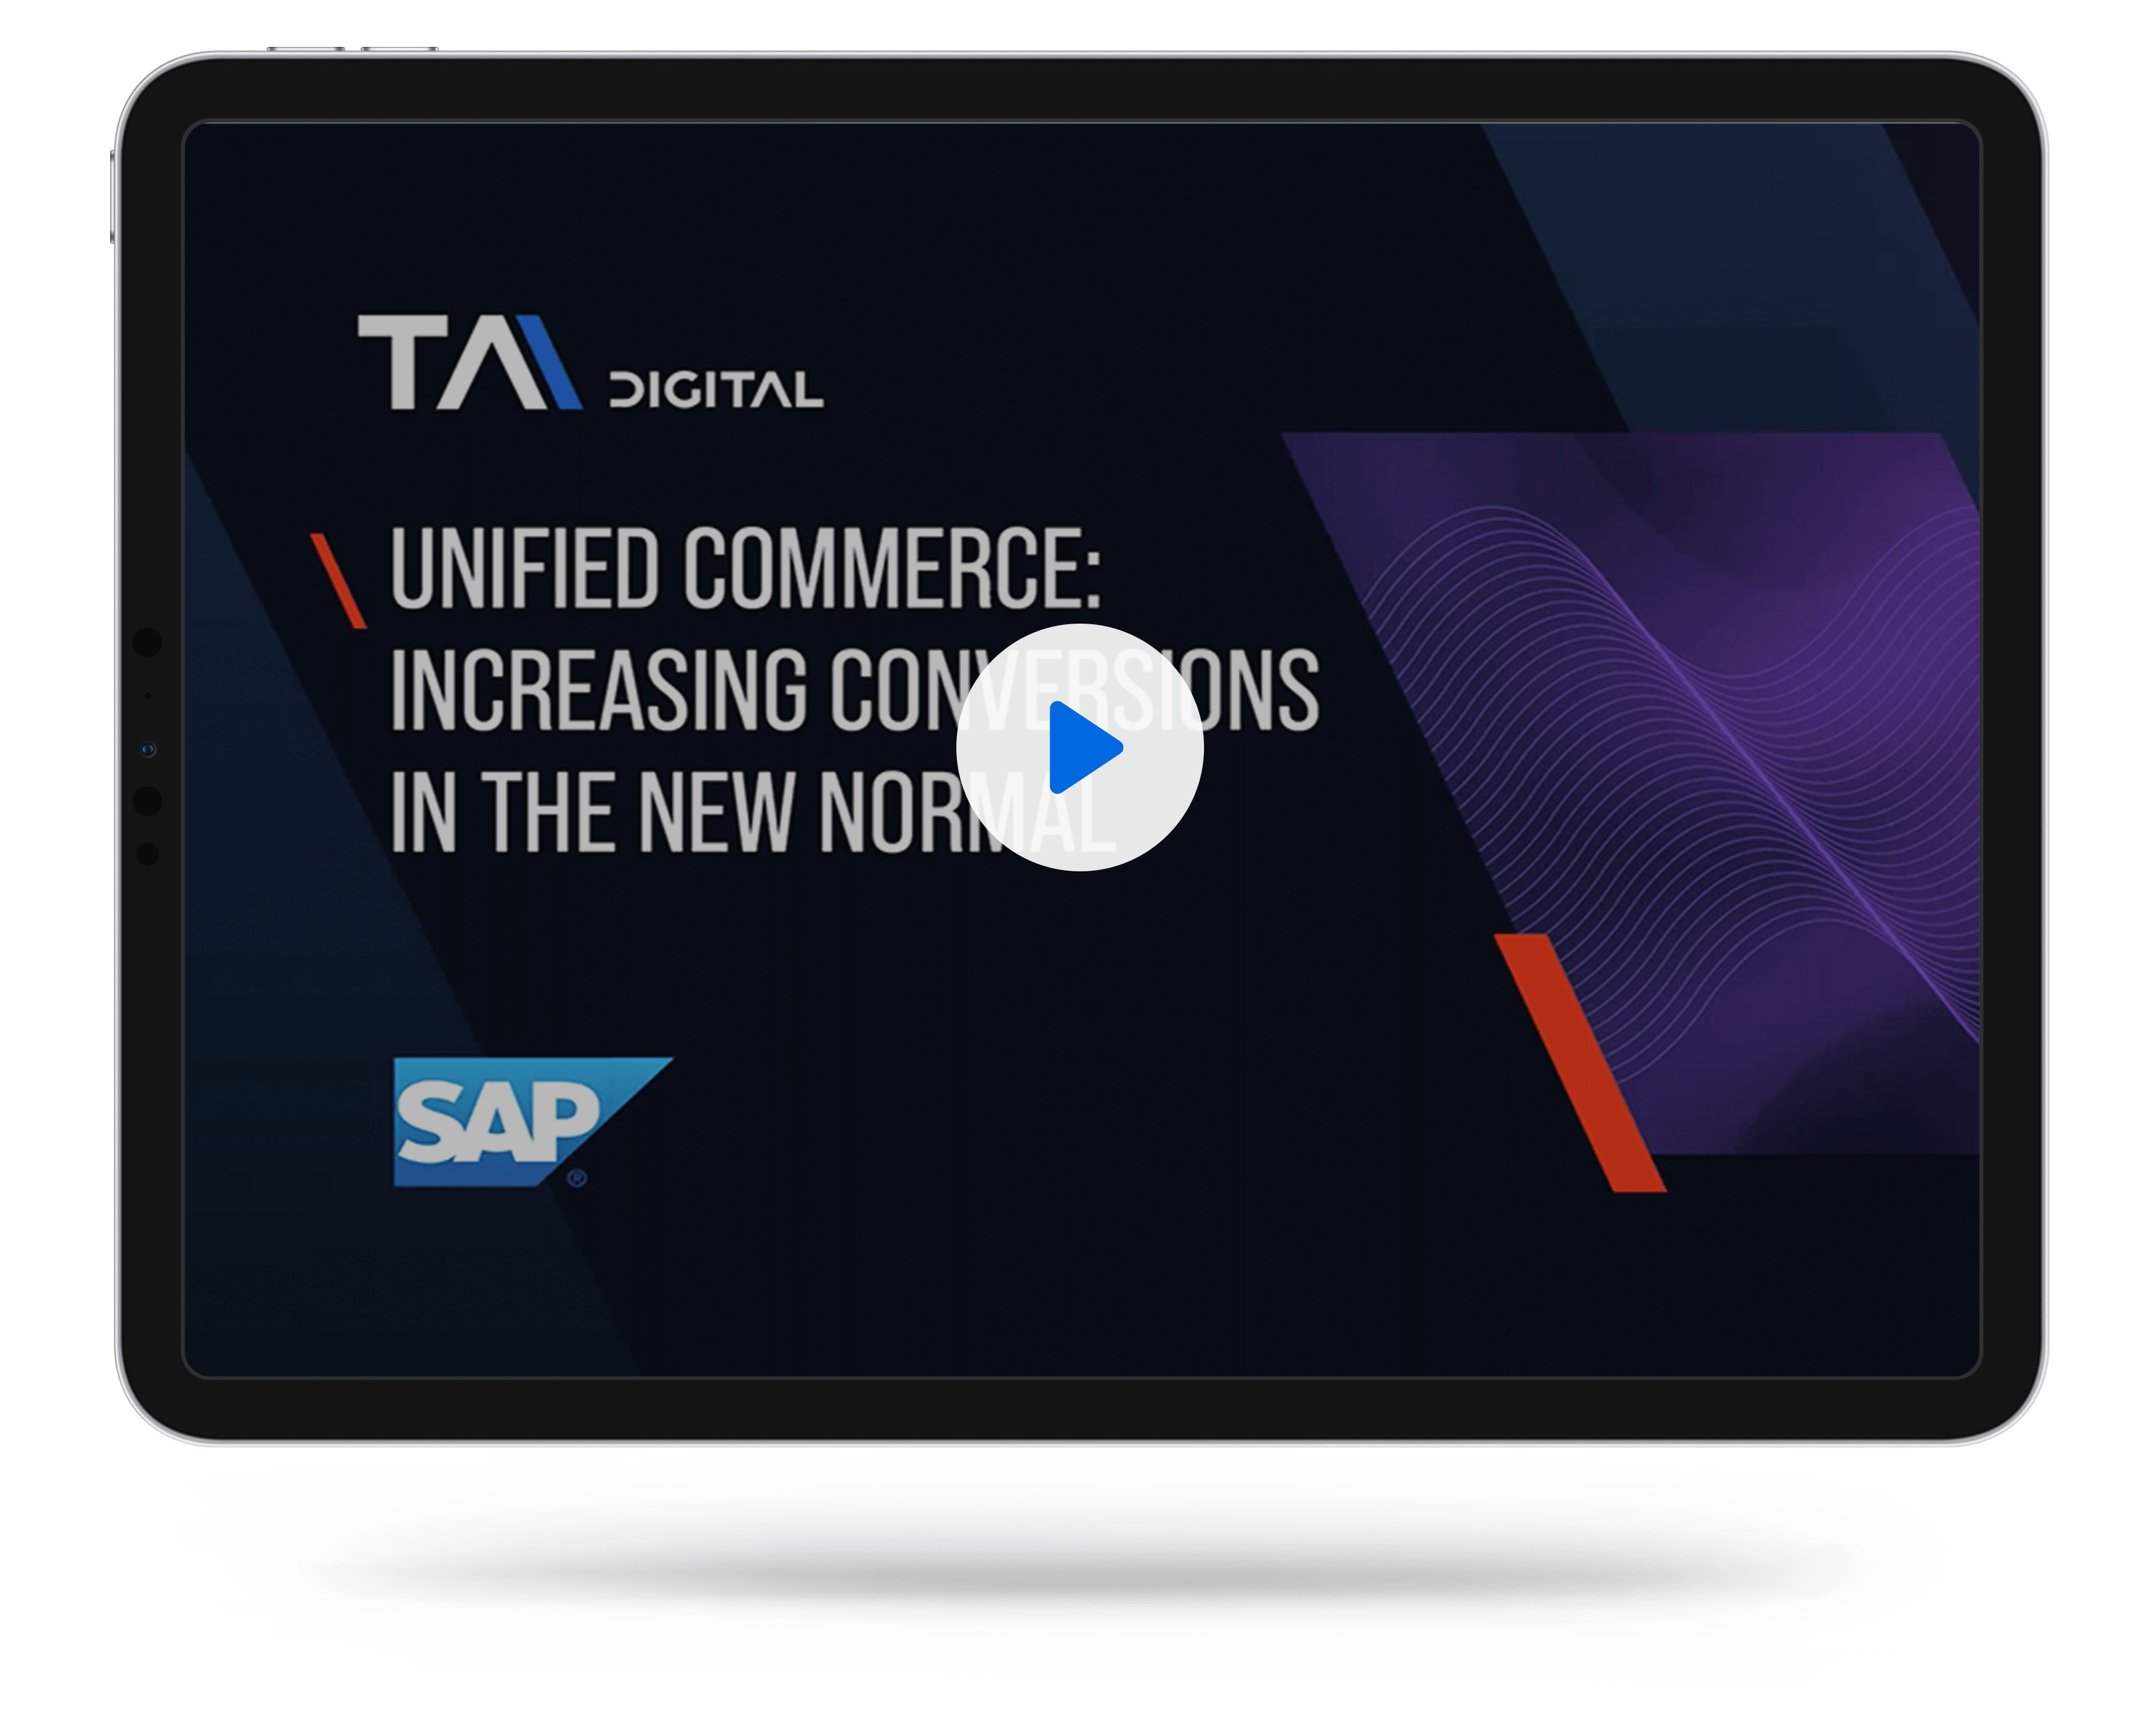 Unified Commerce: Increasing Conversions in the New Normal mockup